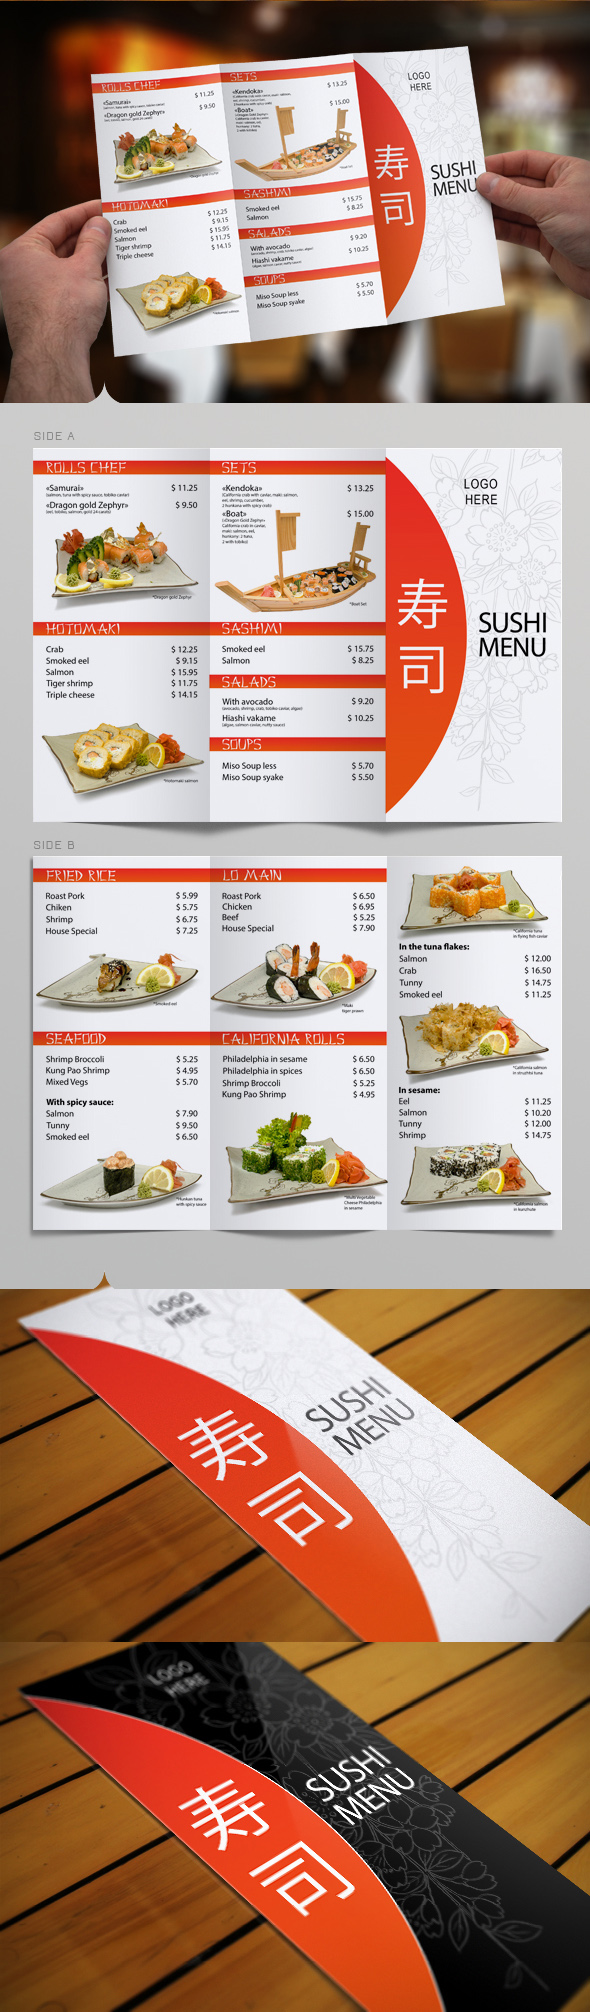 Resturant Brochures 10 Restaurant Brochure Design Examples for Inspiration